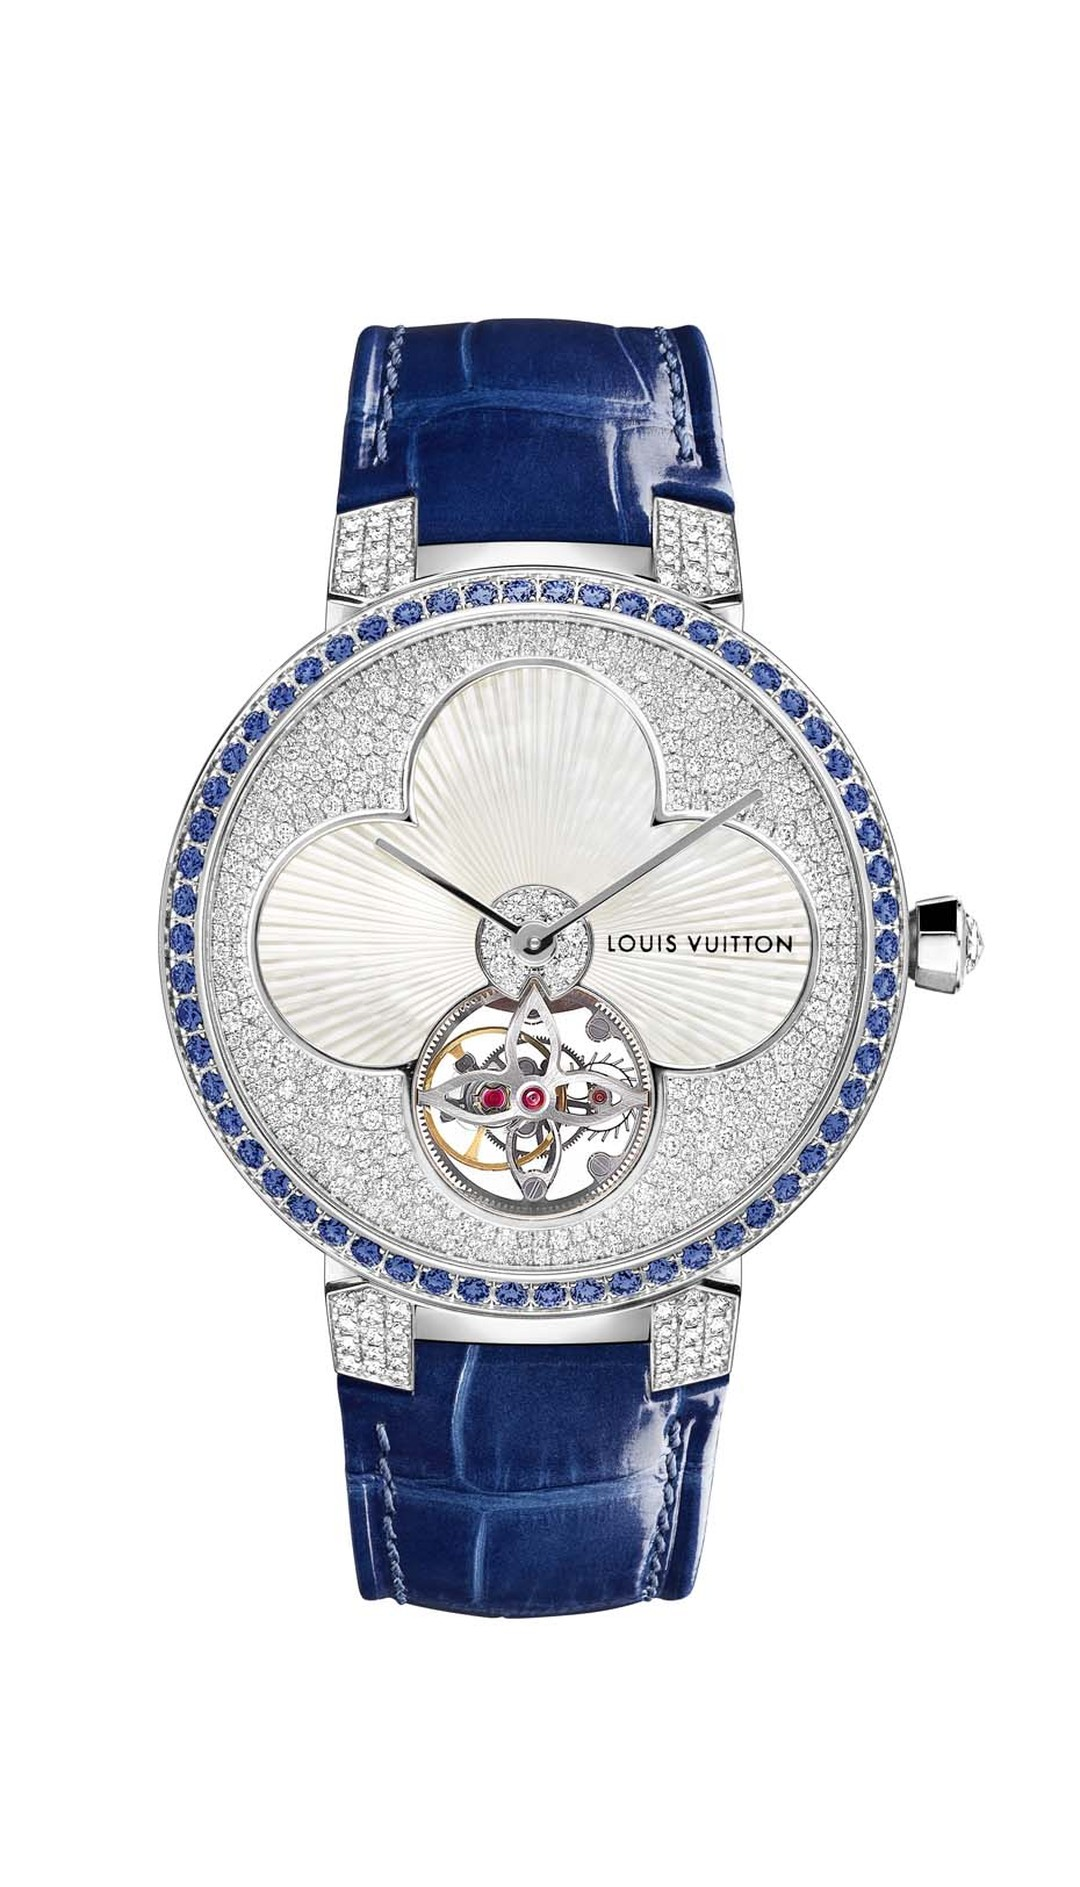 Louis Vuitton watches Tambour Monograph Sun Tourbillon marries its symbolic flower and star logos to the sophisticated mechanical show of a tourbillon. The white mother-of-pearl flower in the centre sits pretty in a bed of snow-set diamonds framed by 58 b